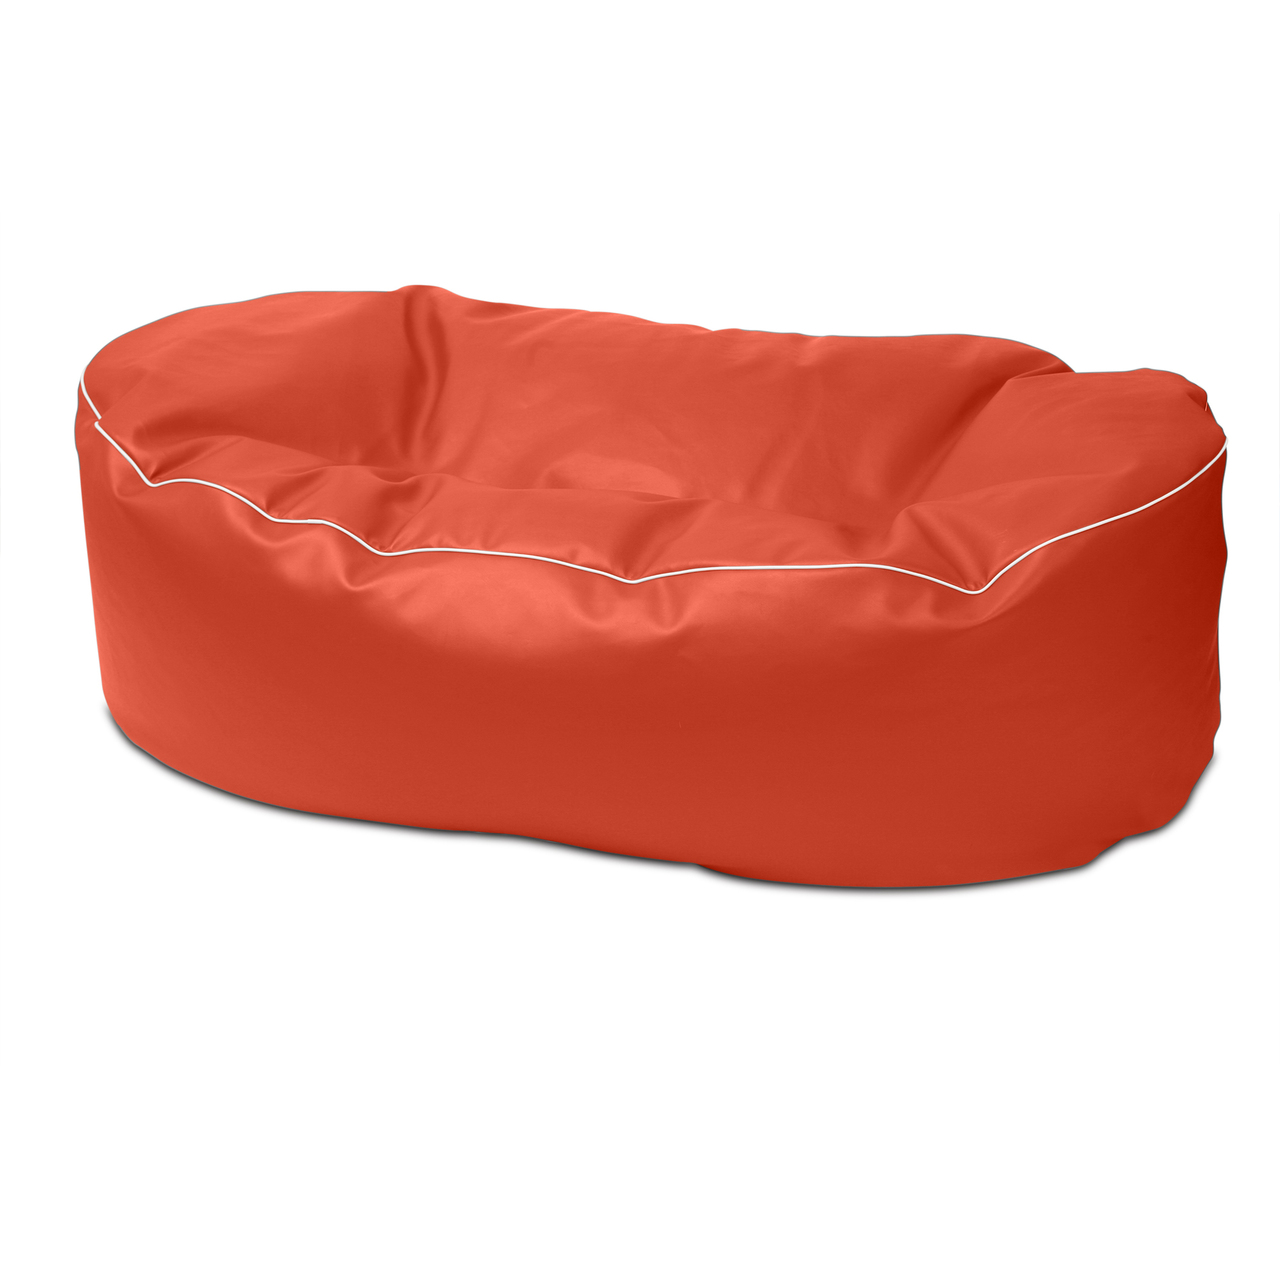 Retro 2m Couch in paprika